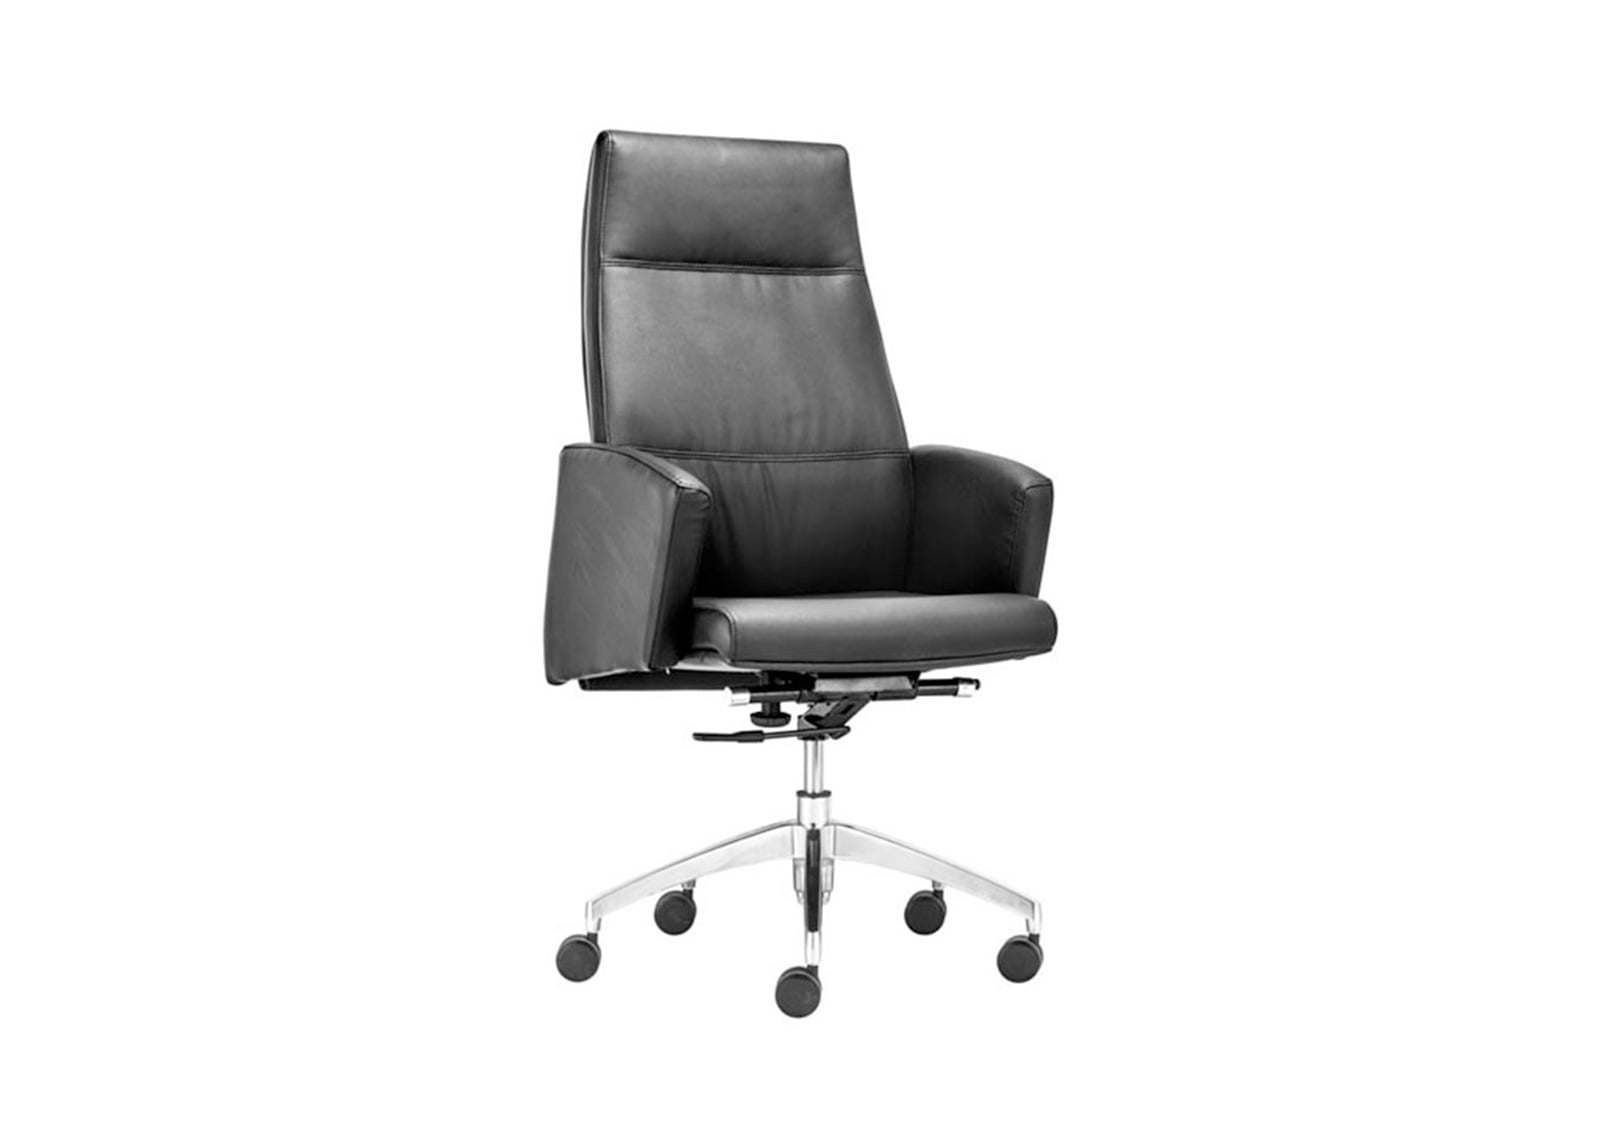 Chieftain-High-Back-Office-Chair-Black1